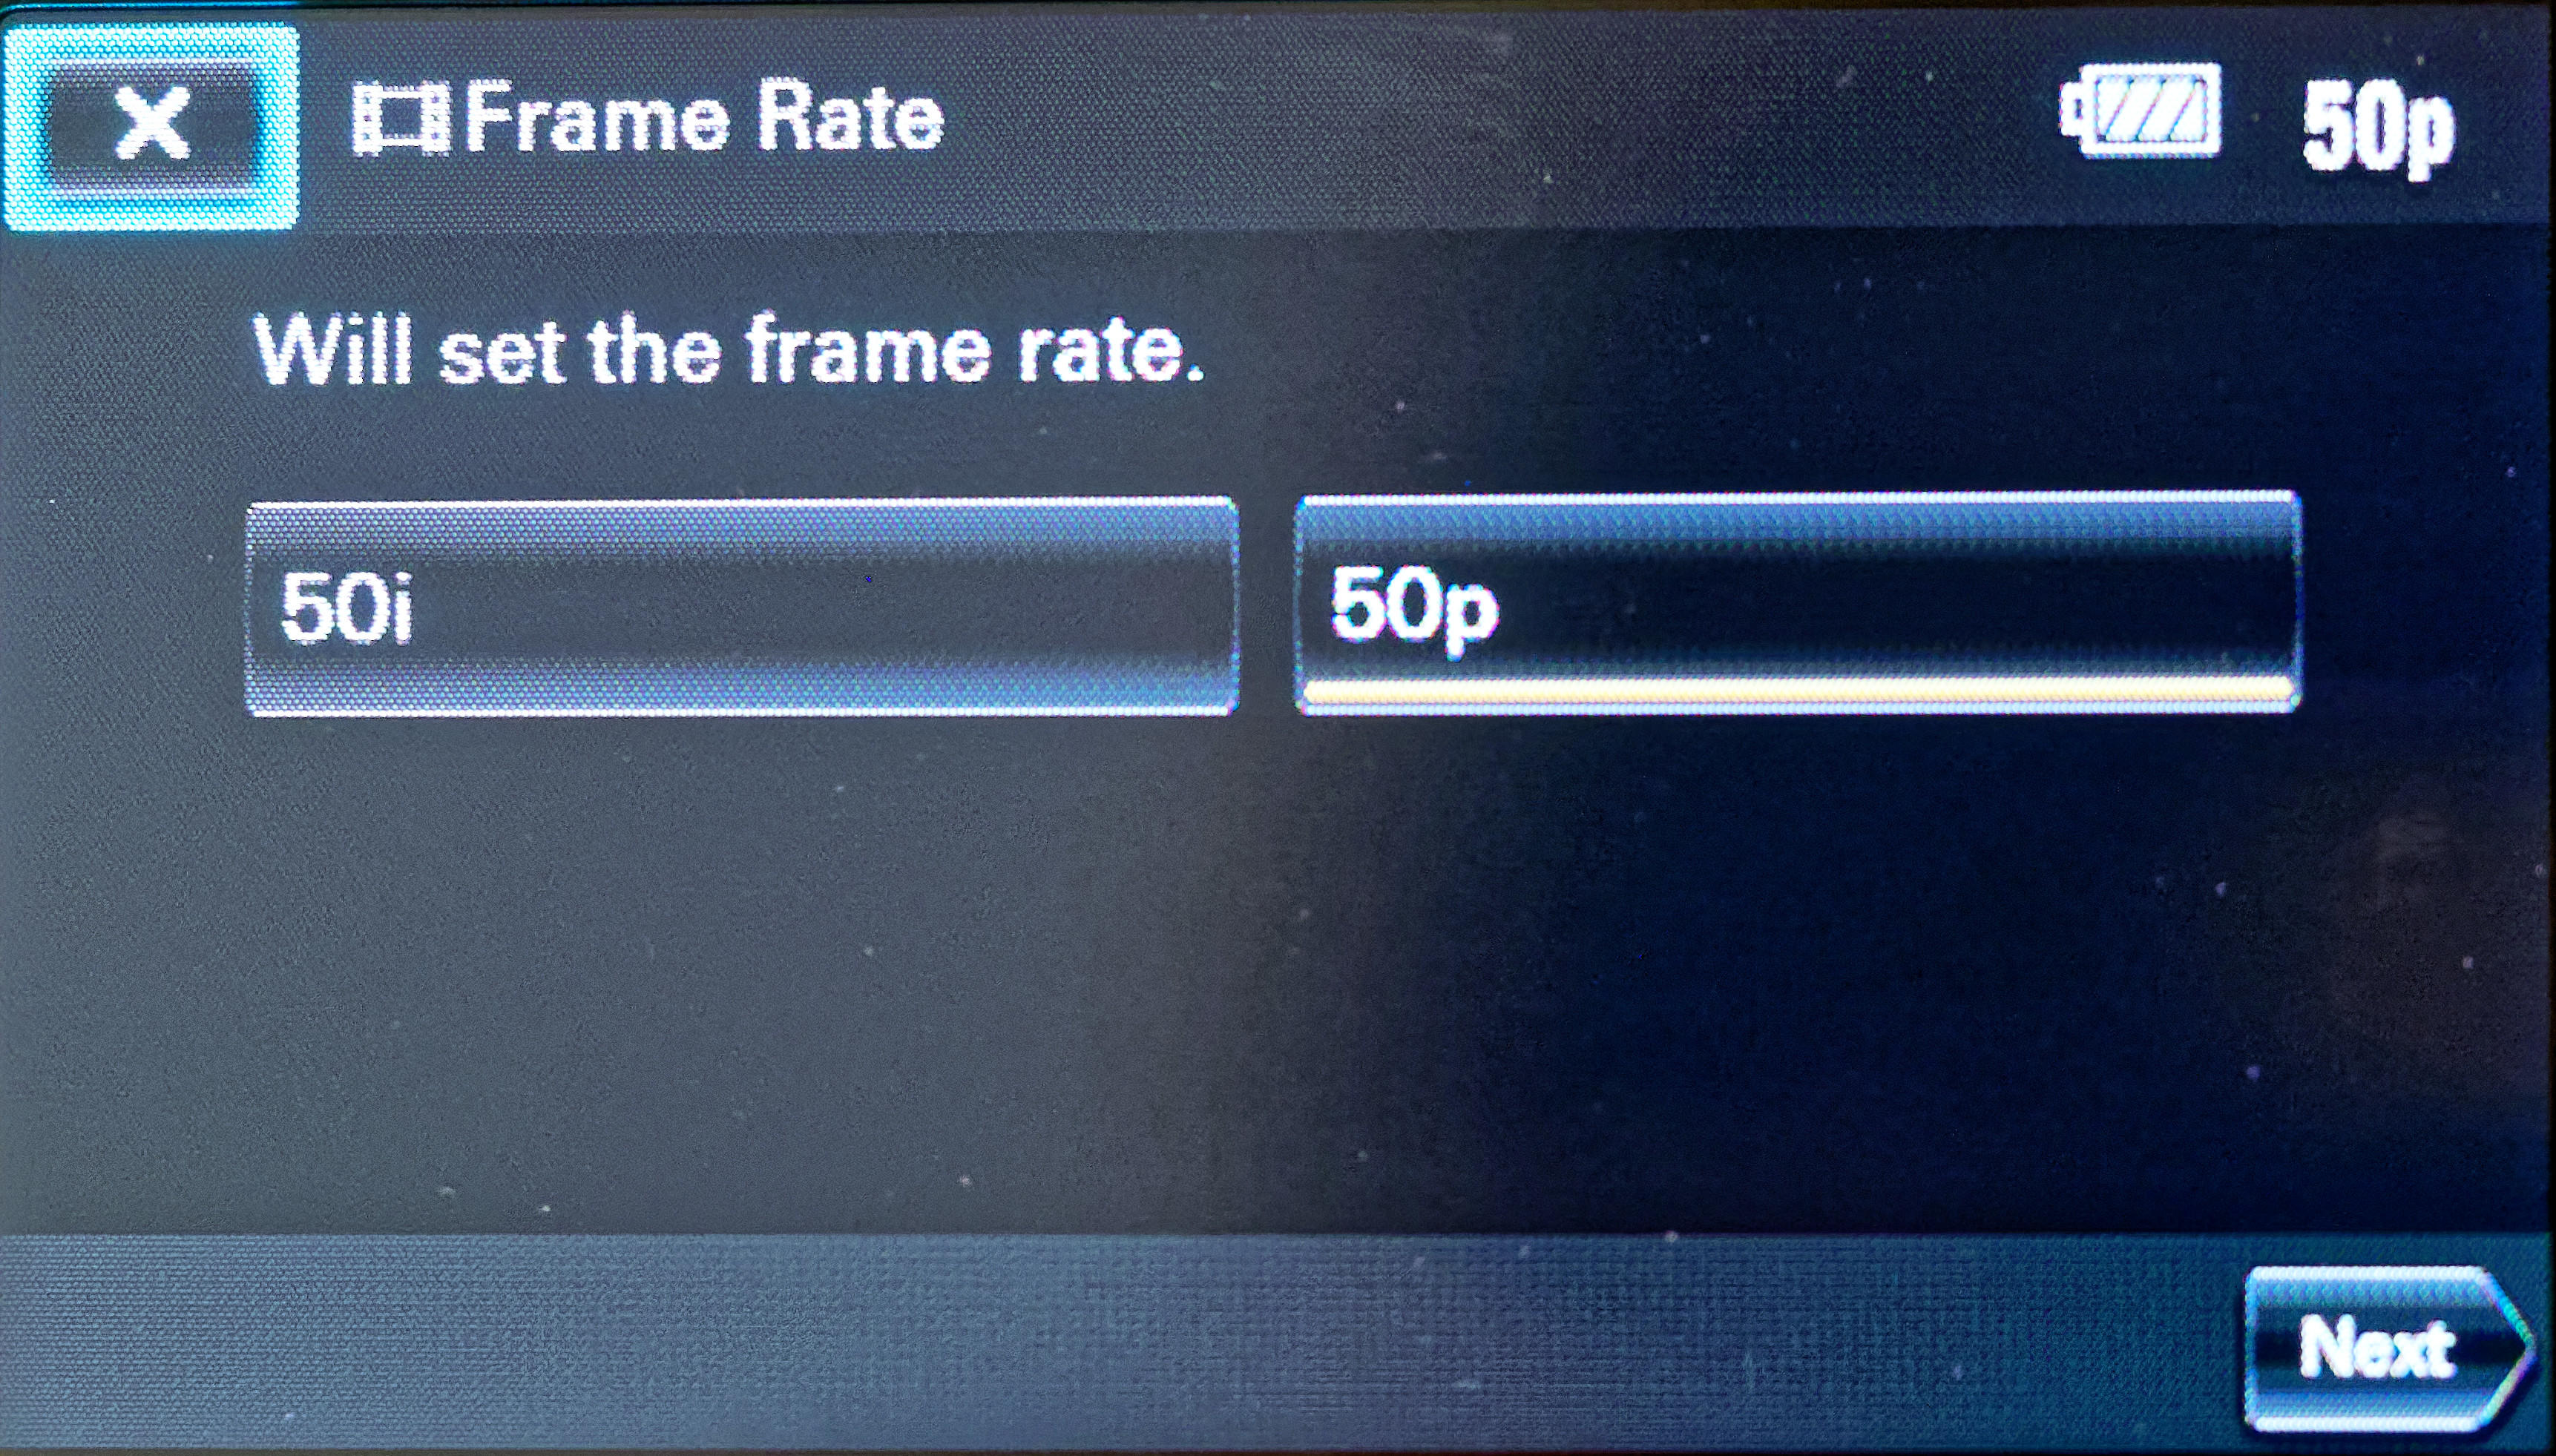 This should be Sony-HDR-CX405-menu-5.jpeg.  Is it missing?